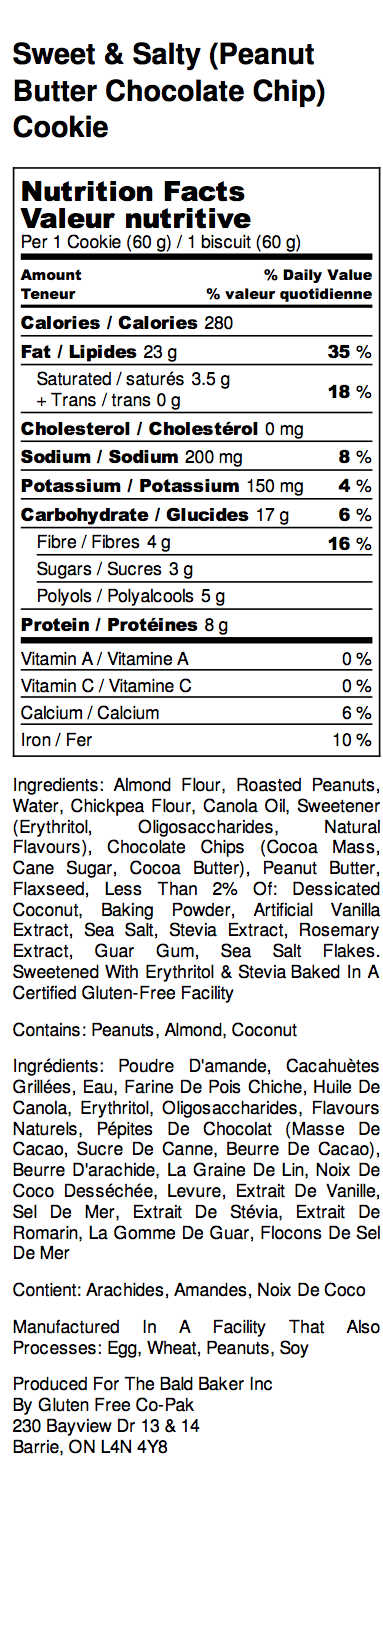 products/Sweet_Salty_Peanut_Butter_Chocolate_Chip_Cookie_-_Nutrition_Label_3-187270.png